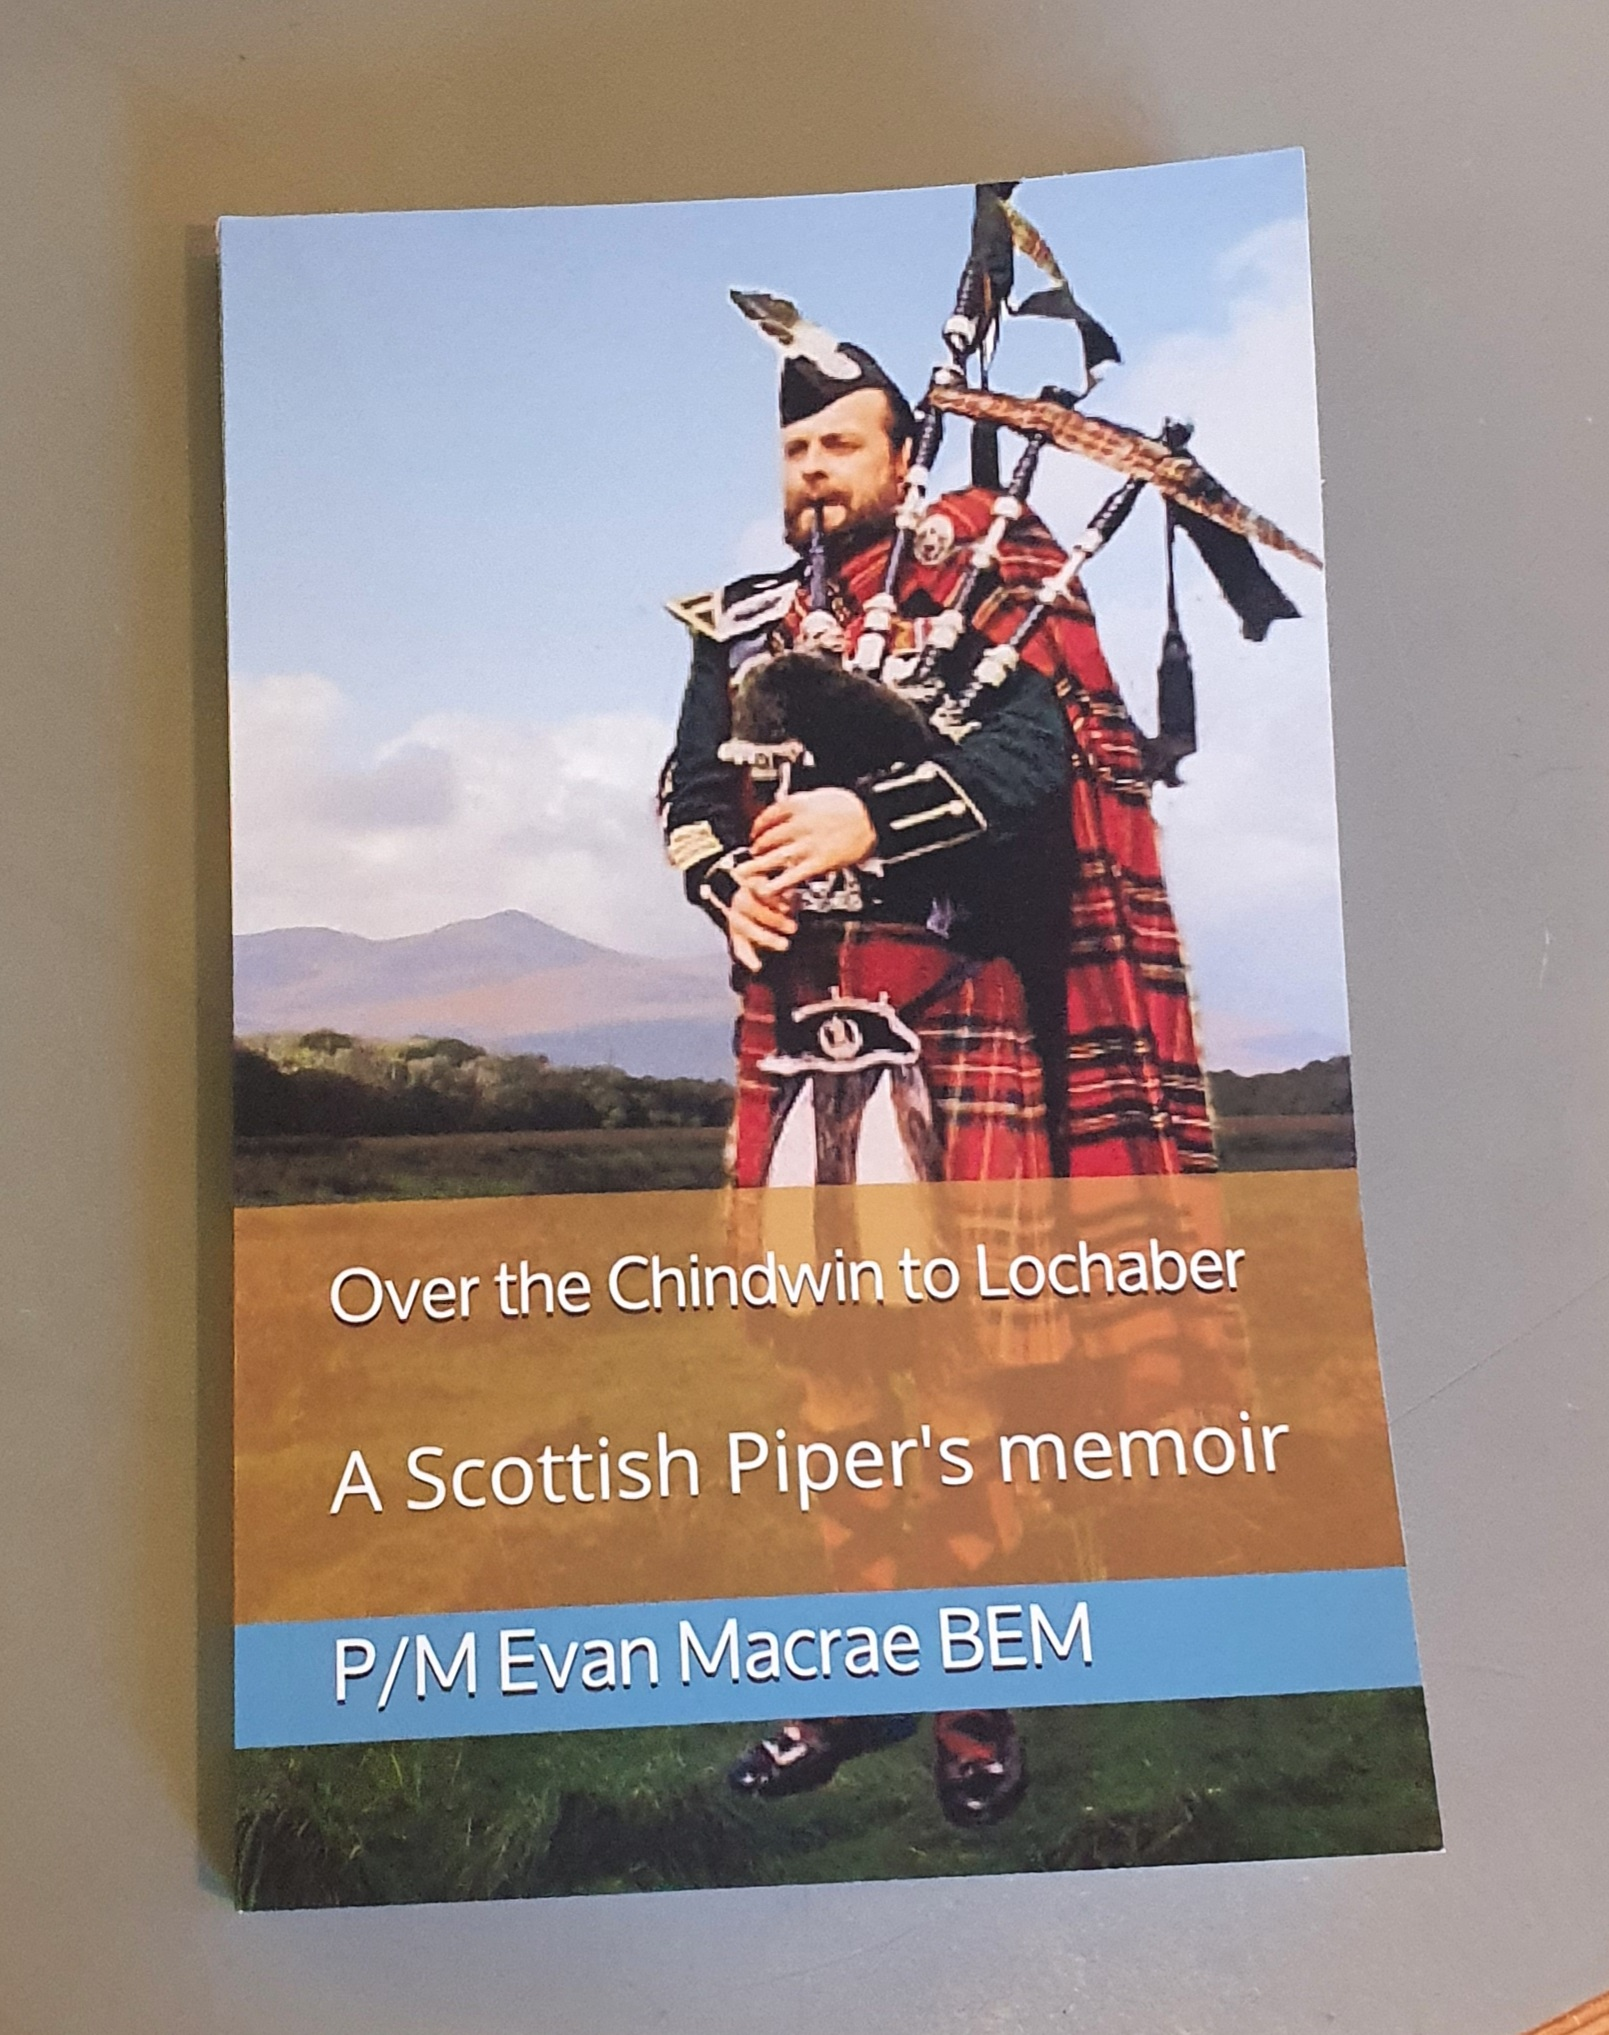 Over the Chindwin to Lochaber - A Scottish Piper's memoir